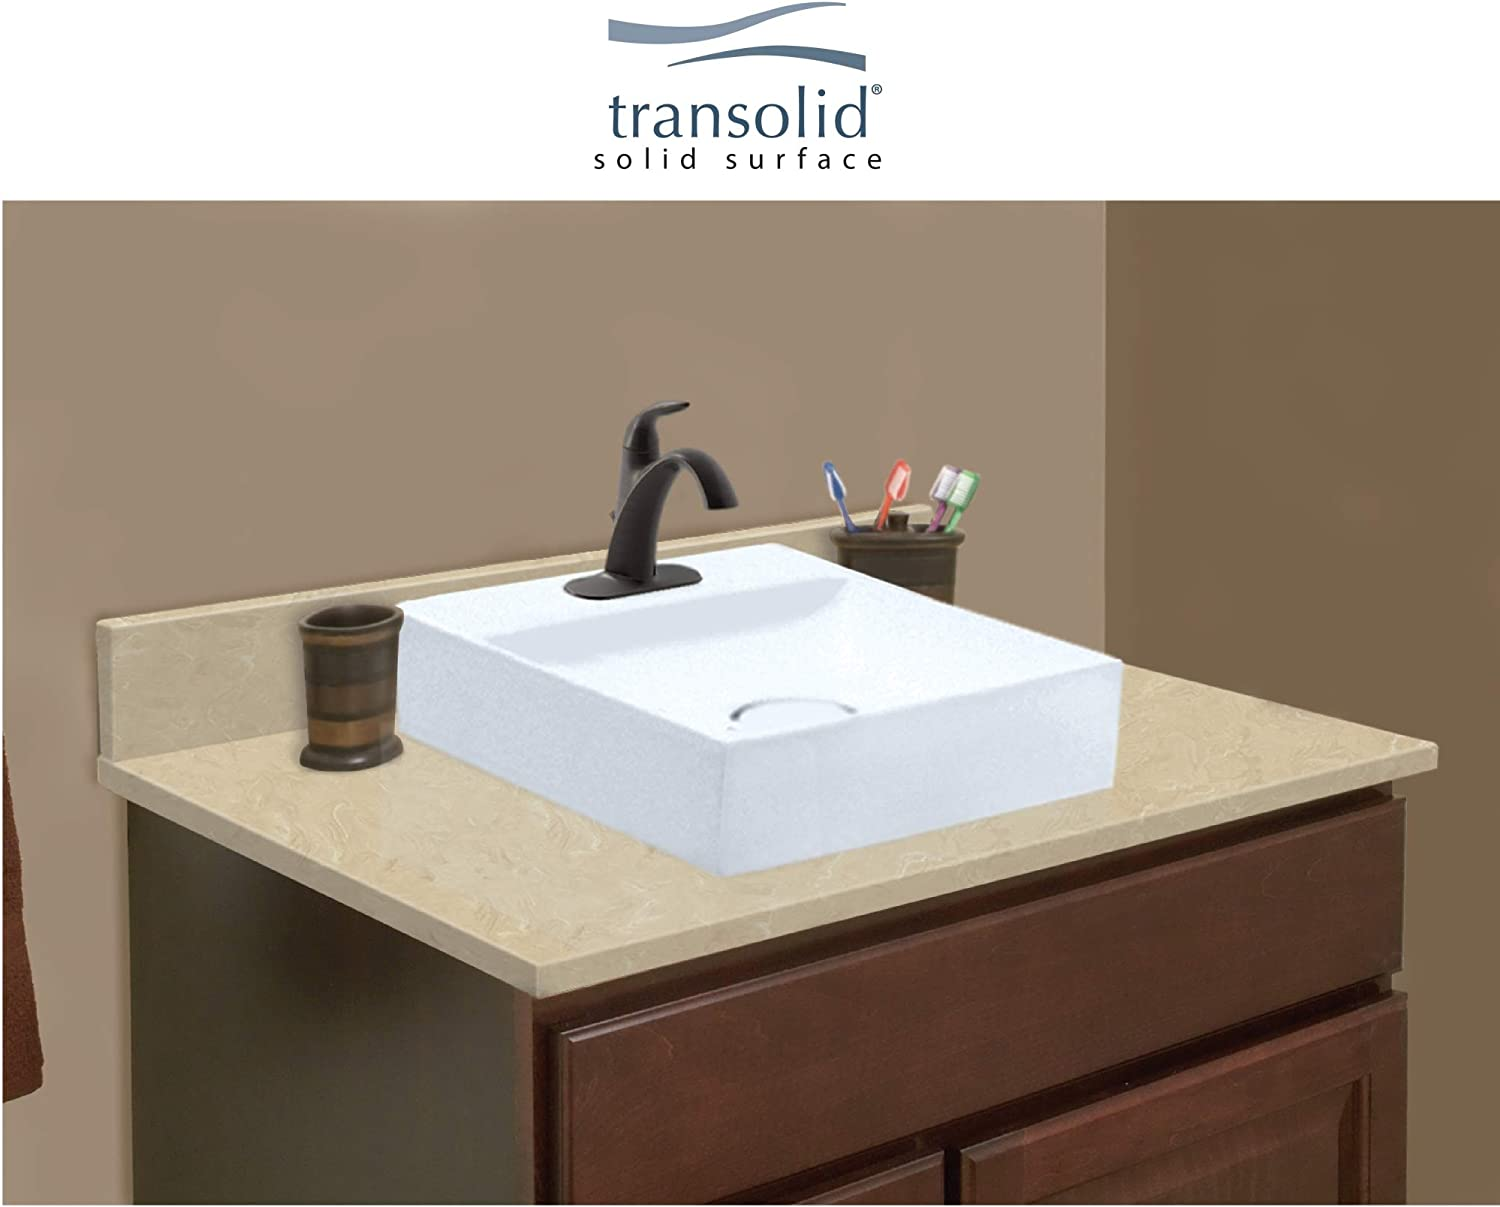 Transolid Vt28 25x22 1sv 96 A W 4 28 25 In D Solid Surface Vanity Top With 4 In Centerset And Square Vessel Sink L X 22 25 D Almond Sky Amazon Com